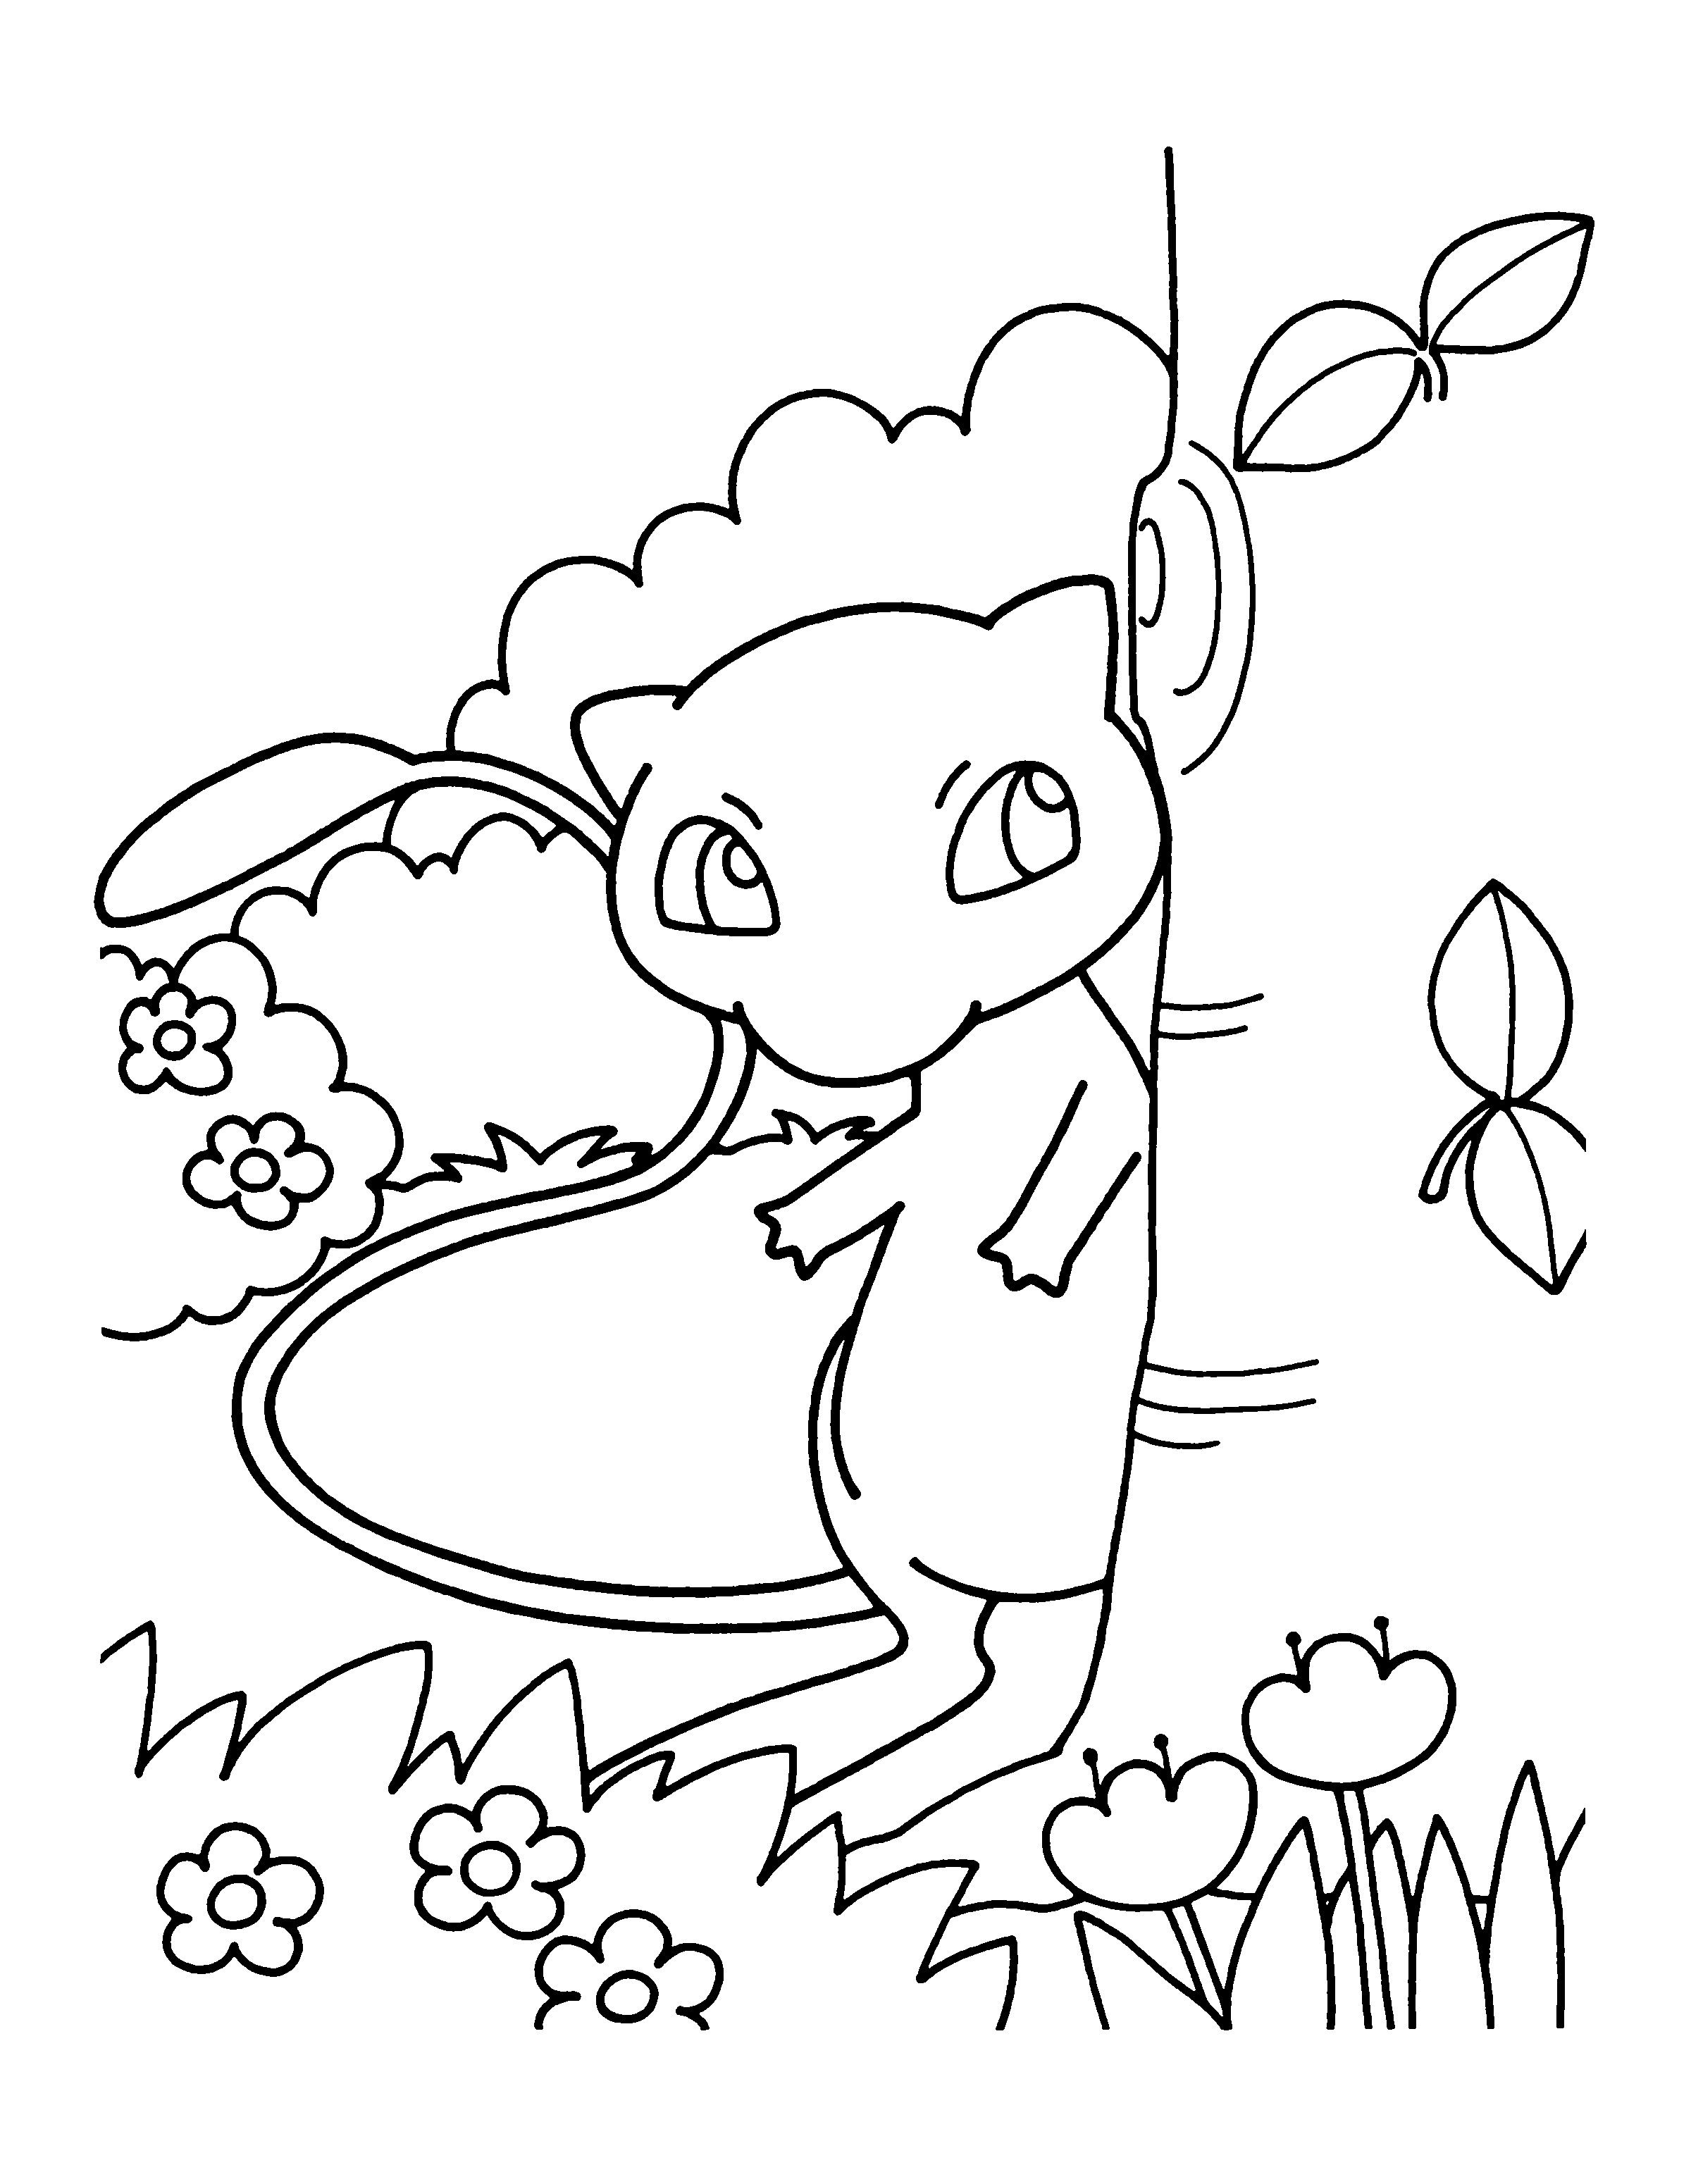 Pokemon Lapras Coloring Pages Pokemon Coloring Pages Pokemon